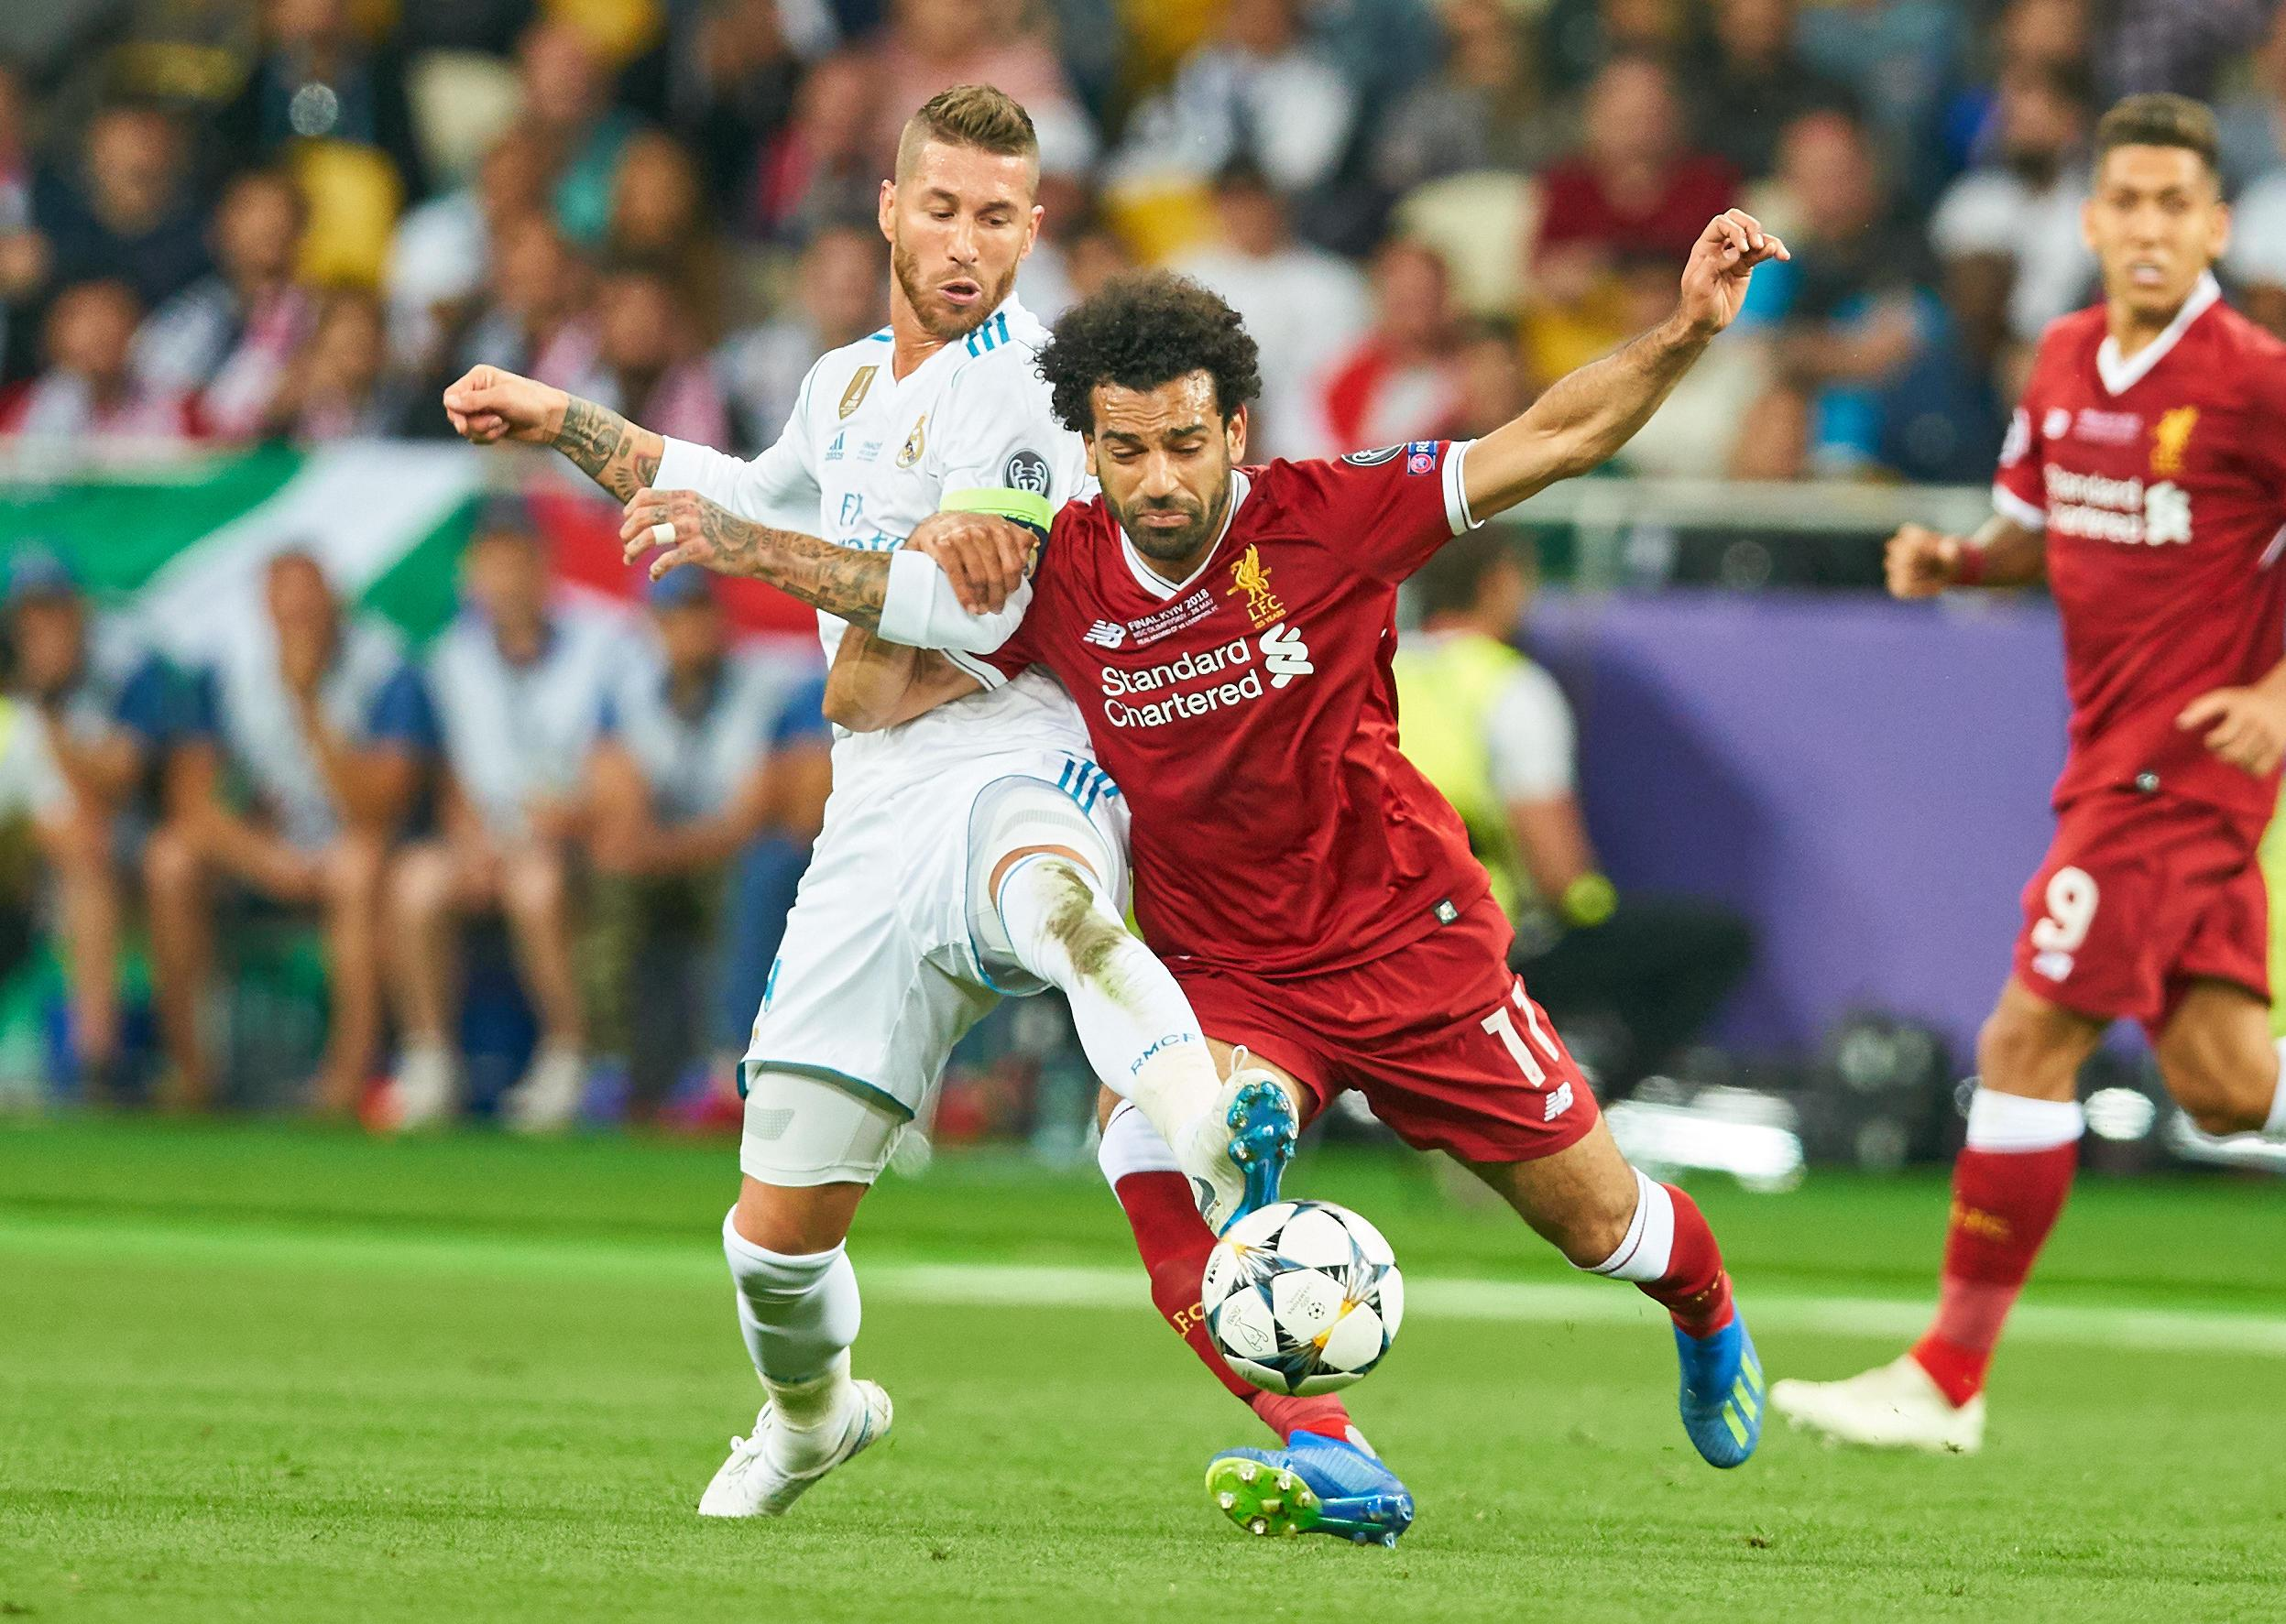 Ramos had said he was not to blame for Mohamed Salah's shoulder injury